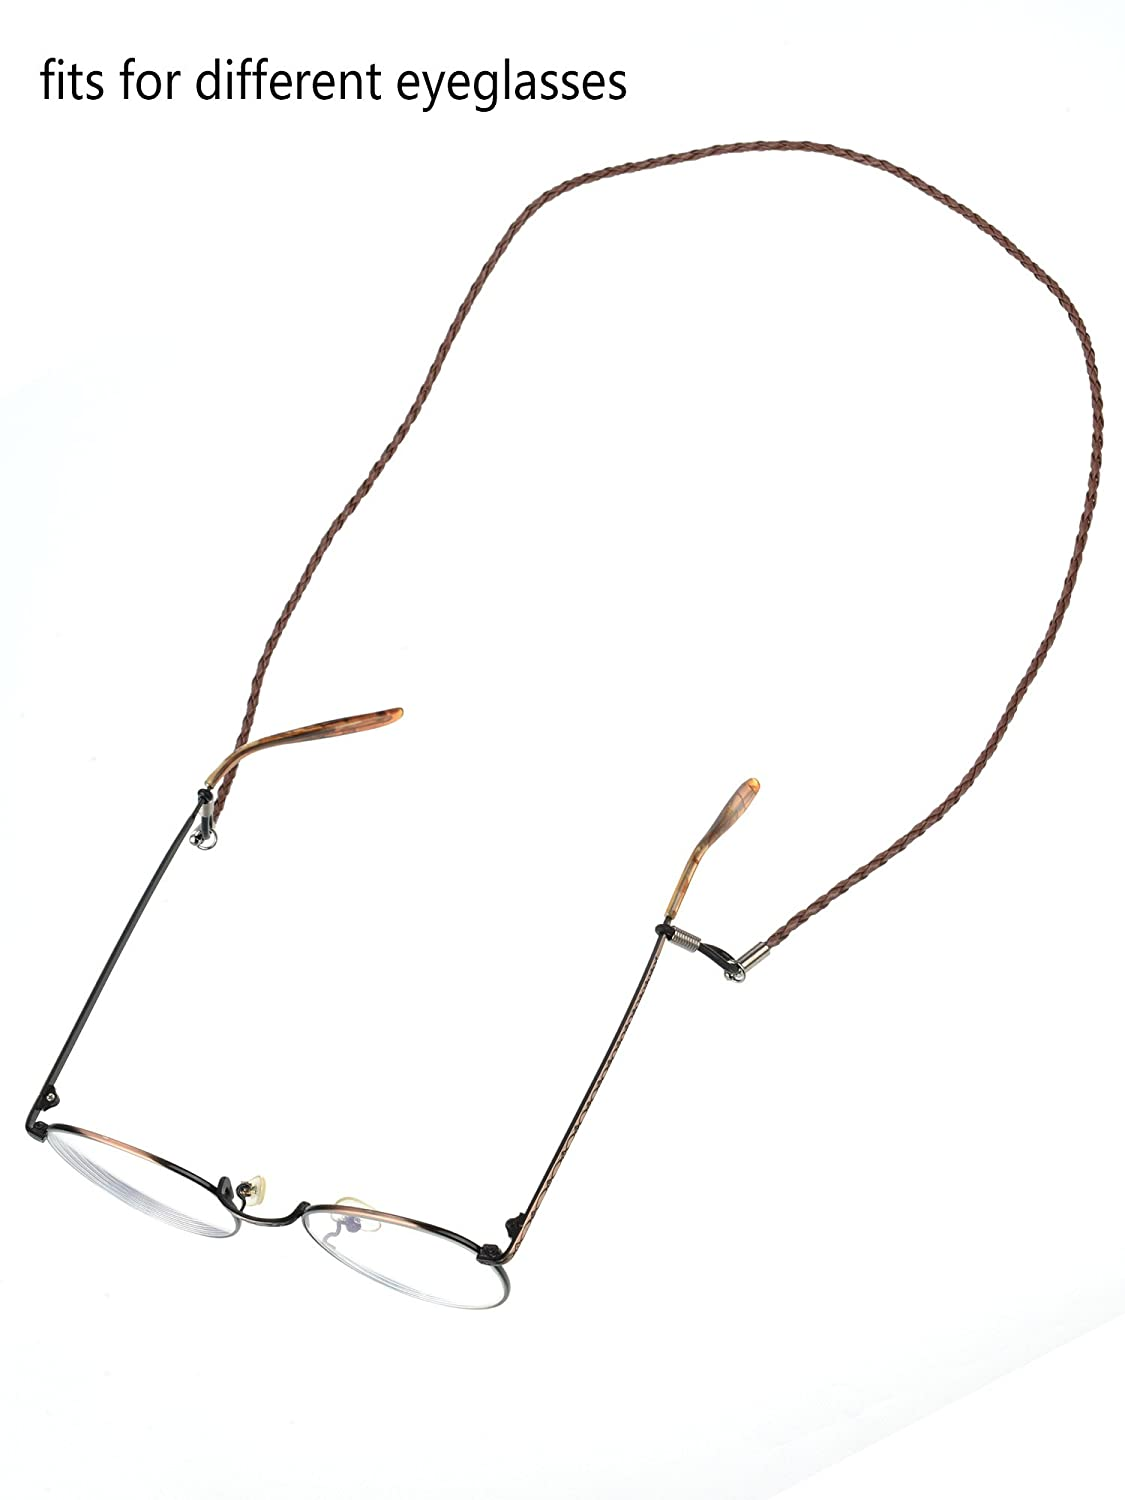 Mudder 5 Piece Eyeglass Chain PU Leather Glass Strap with 2 Piece Cleaning Cloth